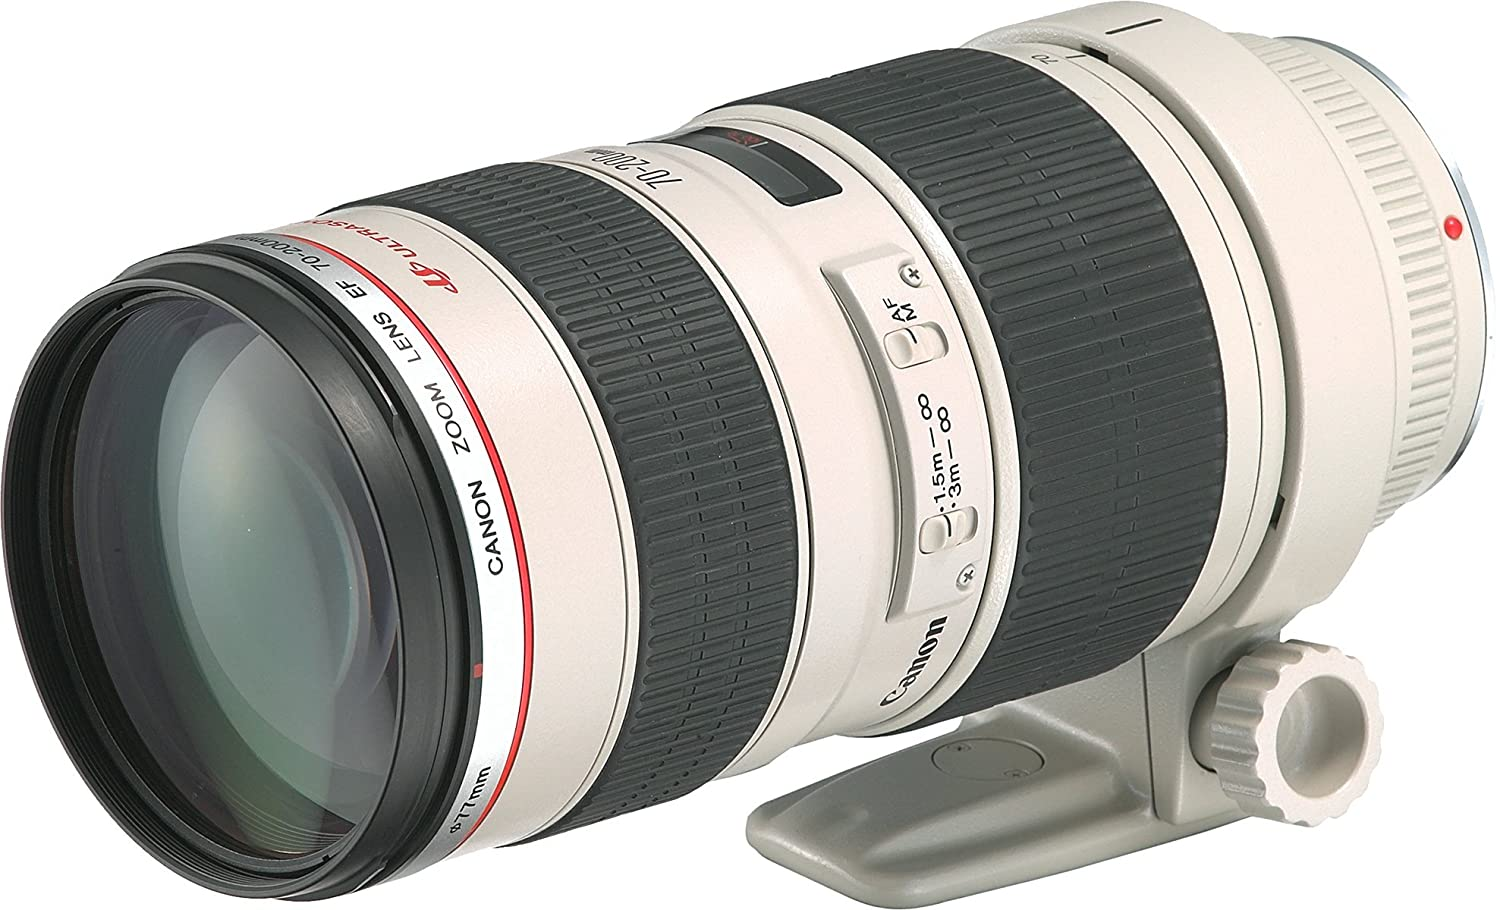 Canon EF 70-200mm f/2.8L USM Telephoto Zoom Lens for Canon DSLR Camera